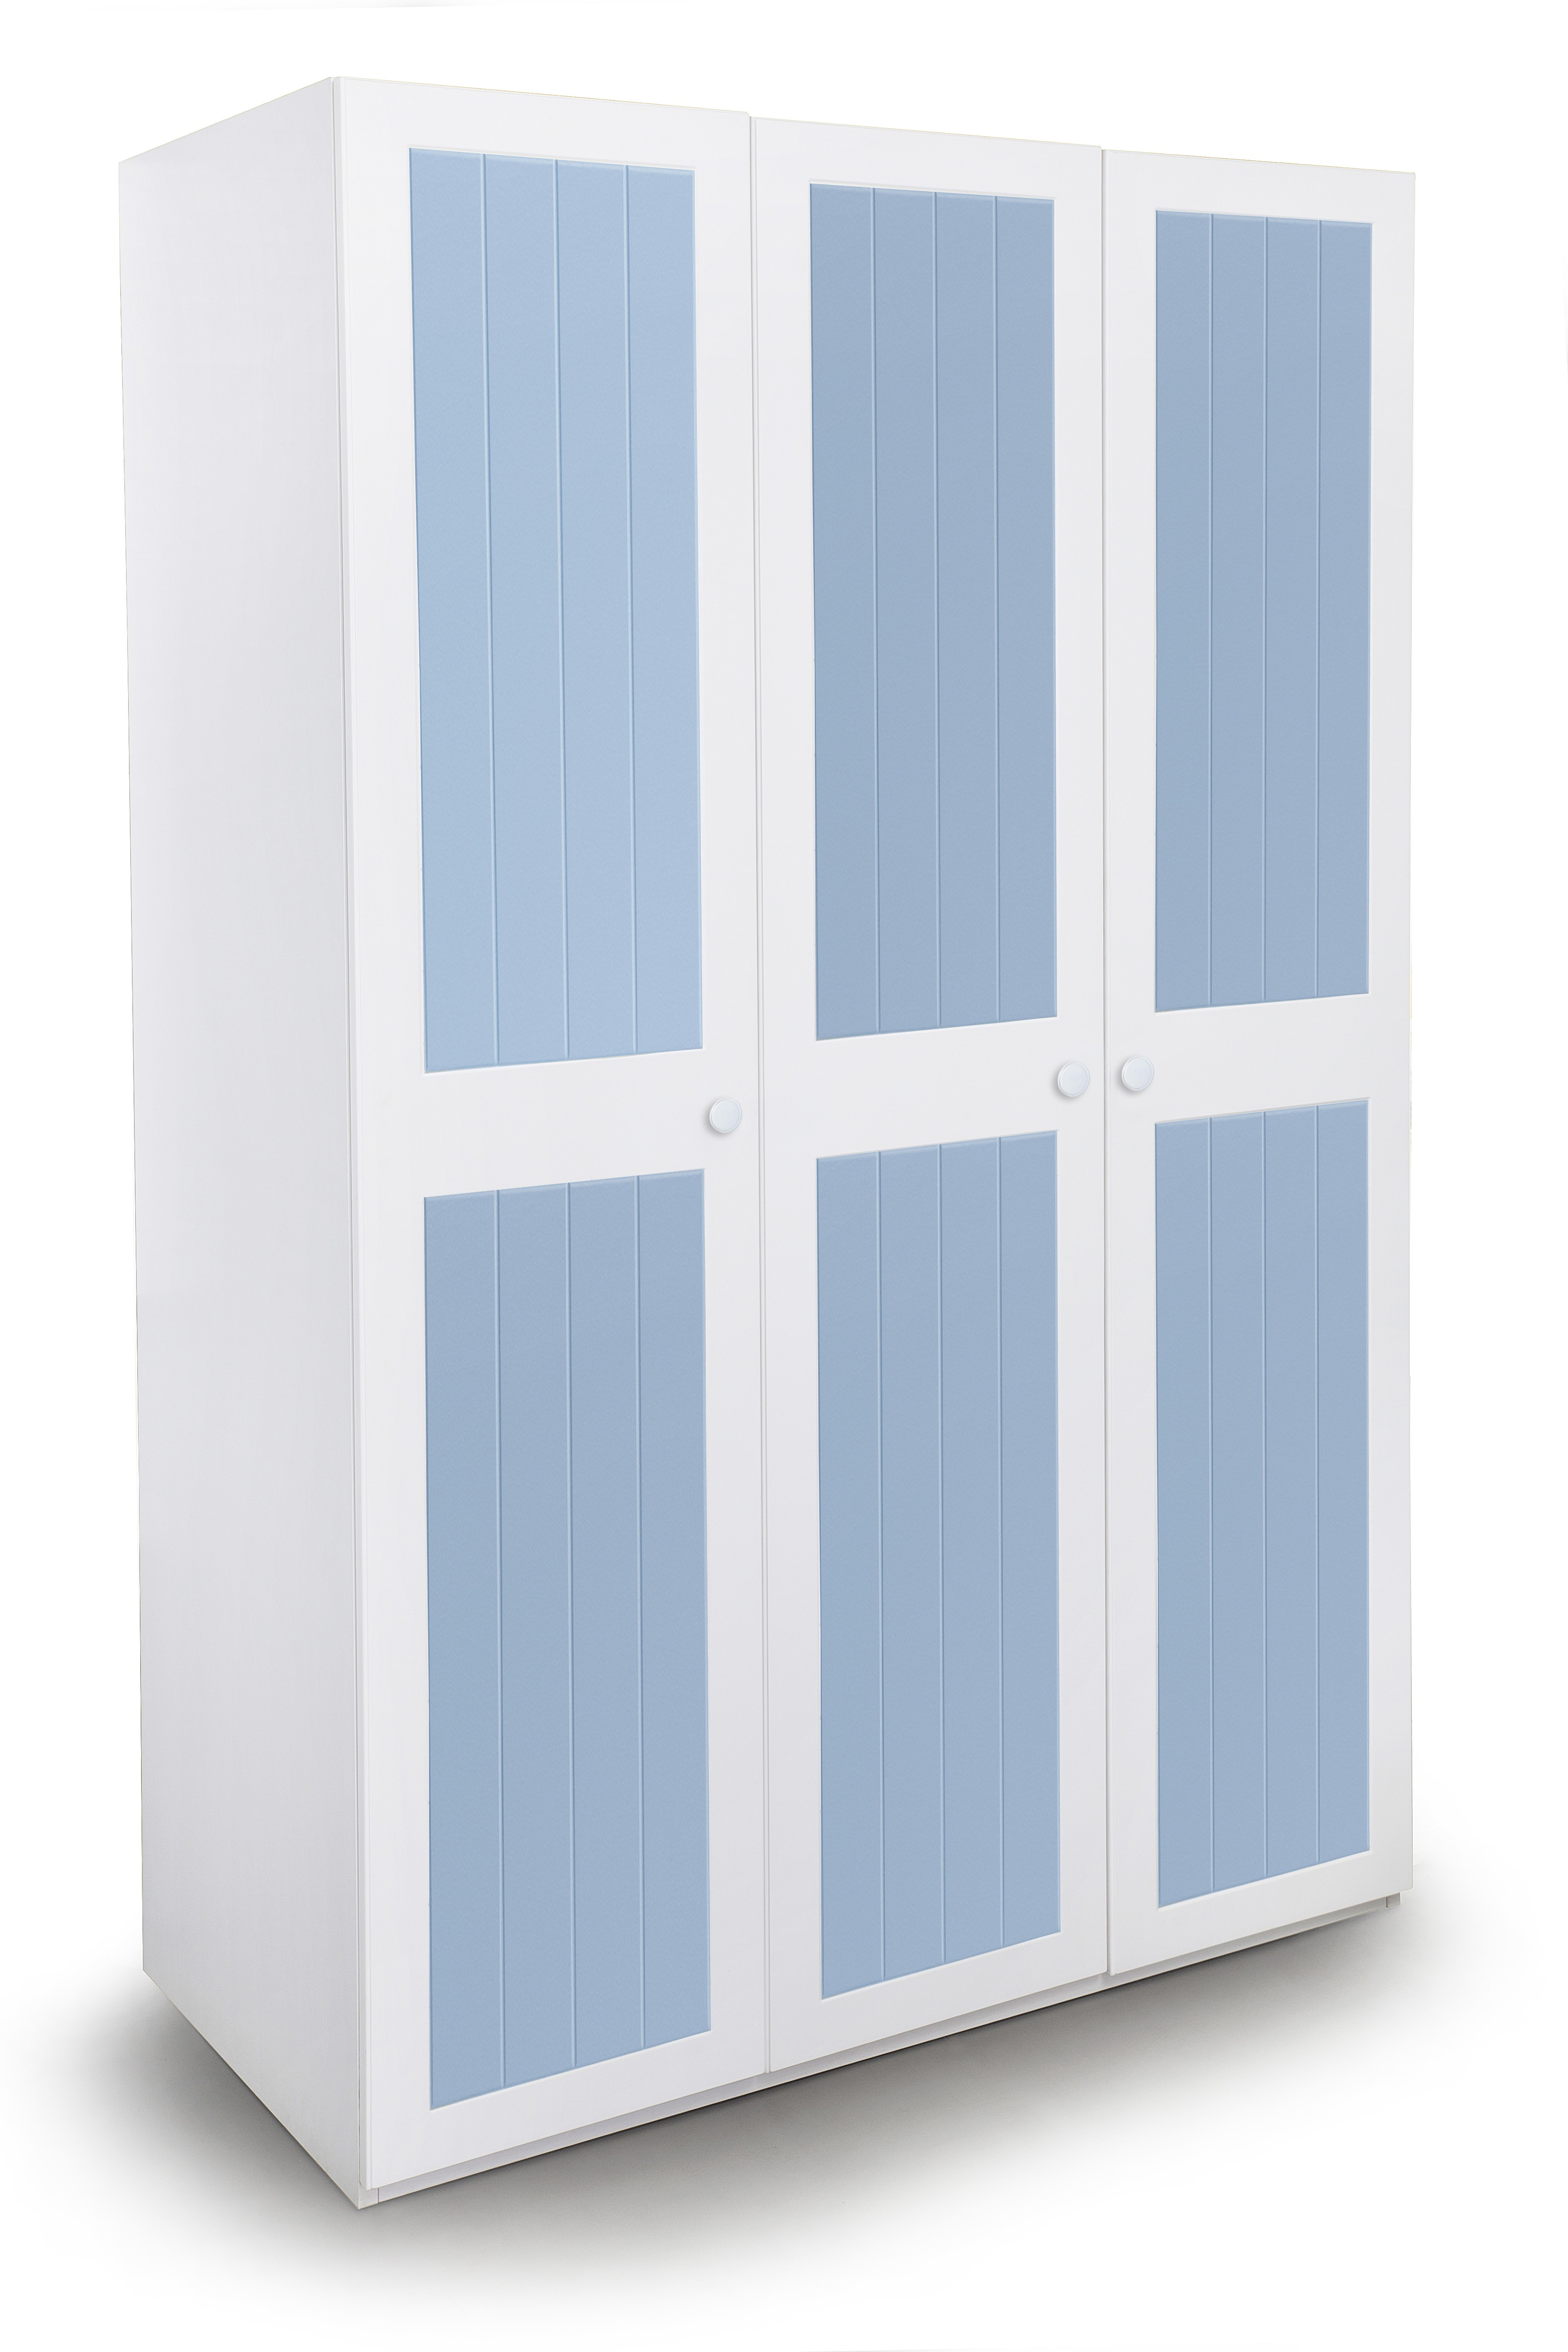 View Alex Daisy French Engineered Wood 3 Door Wardrobe(Finish Color - Blue and White) Price Online(Alex Daisy)